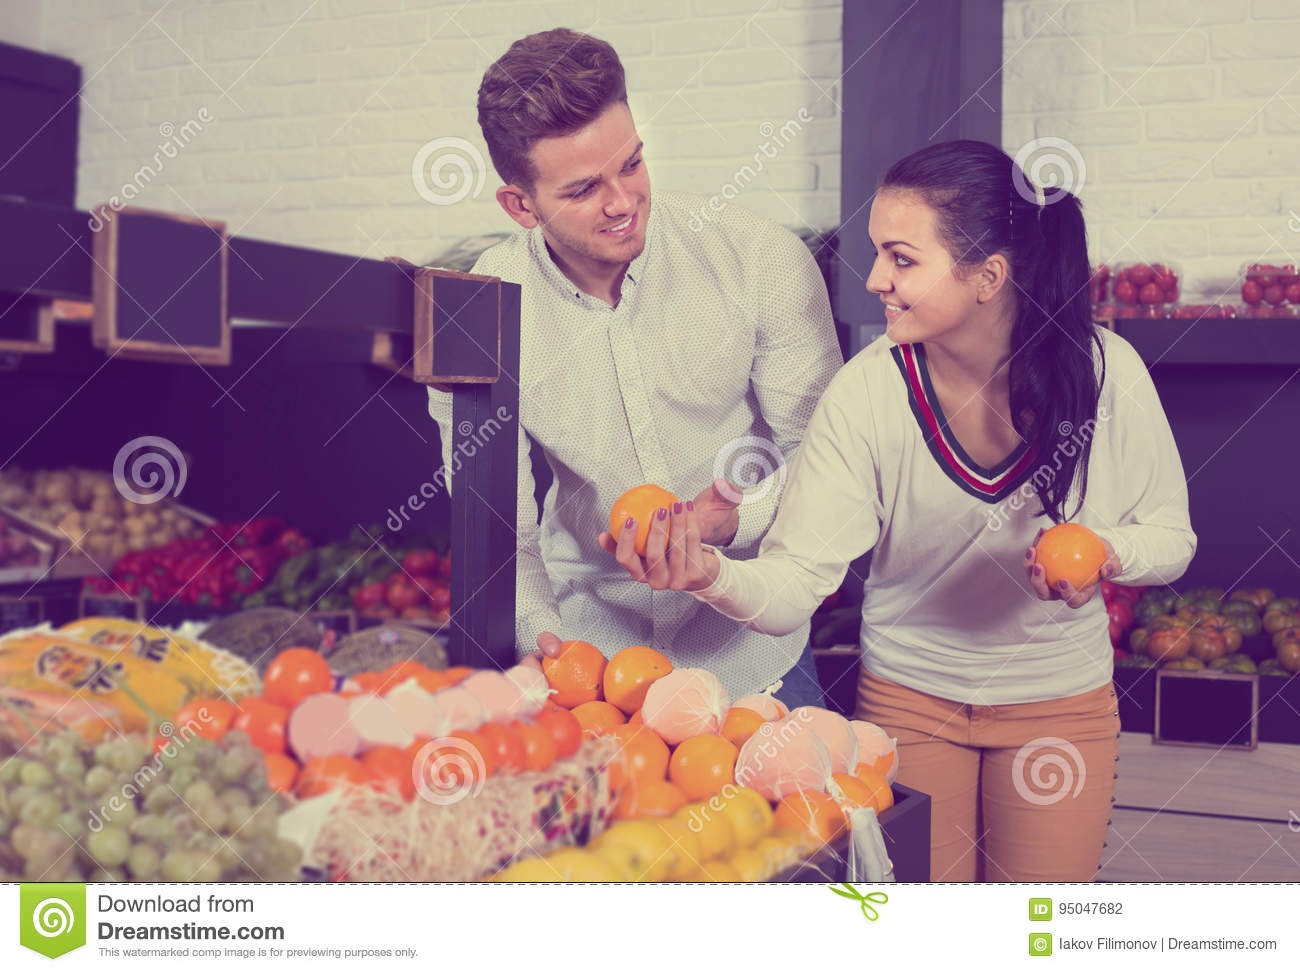 Couple examining various fruits in grocery store